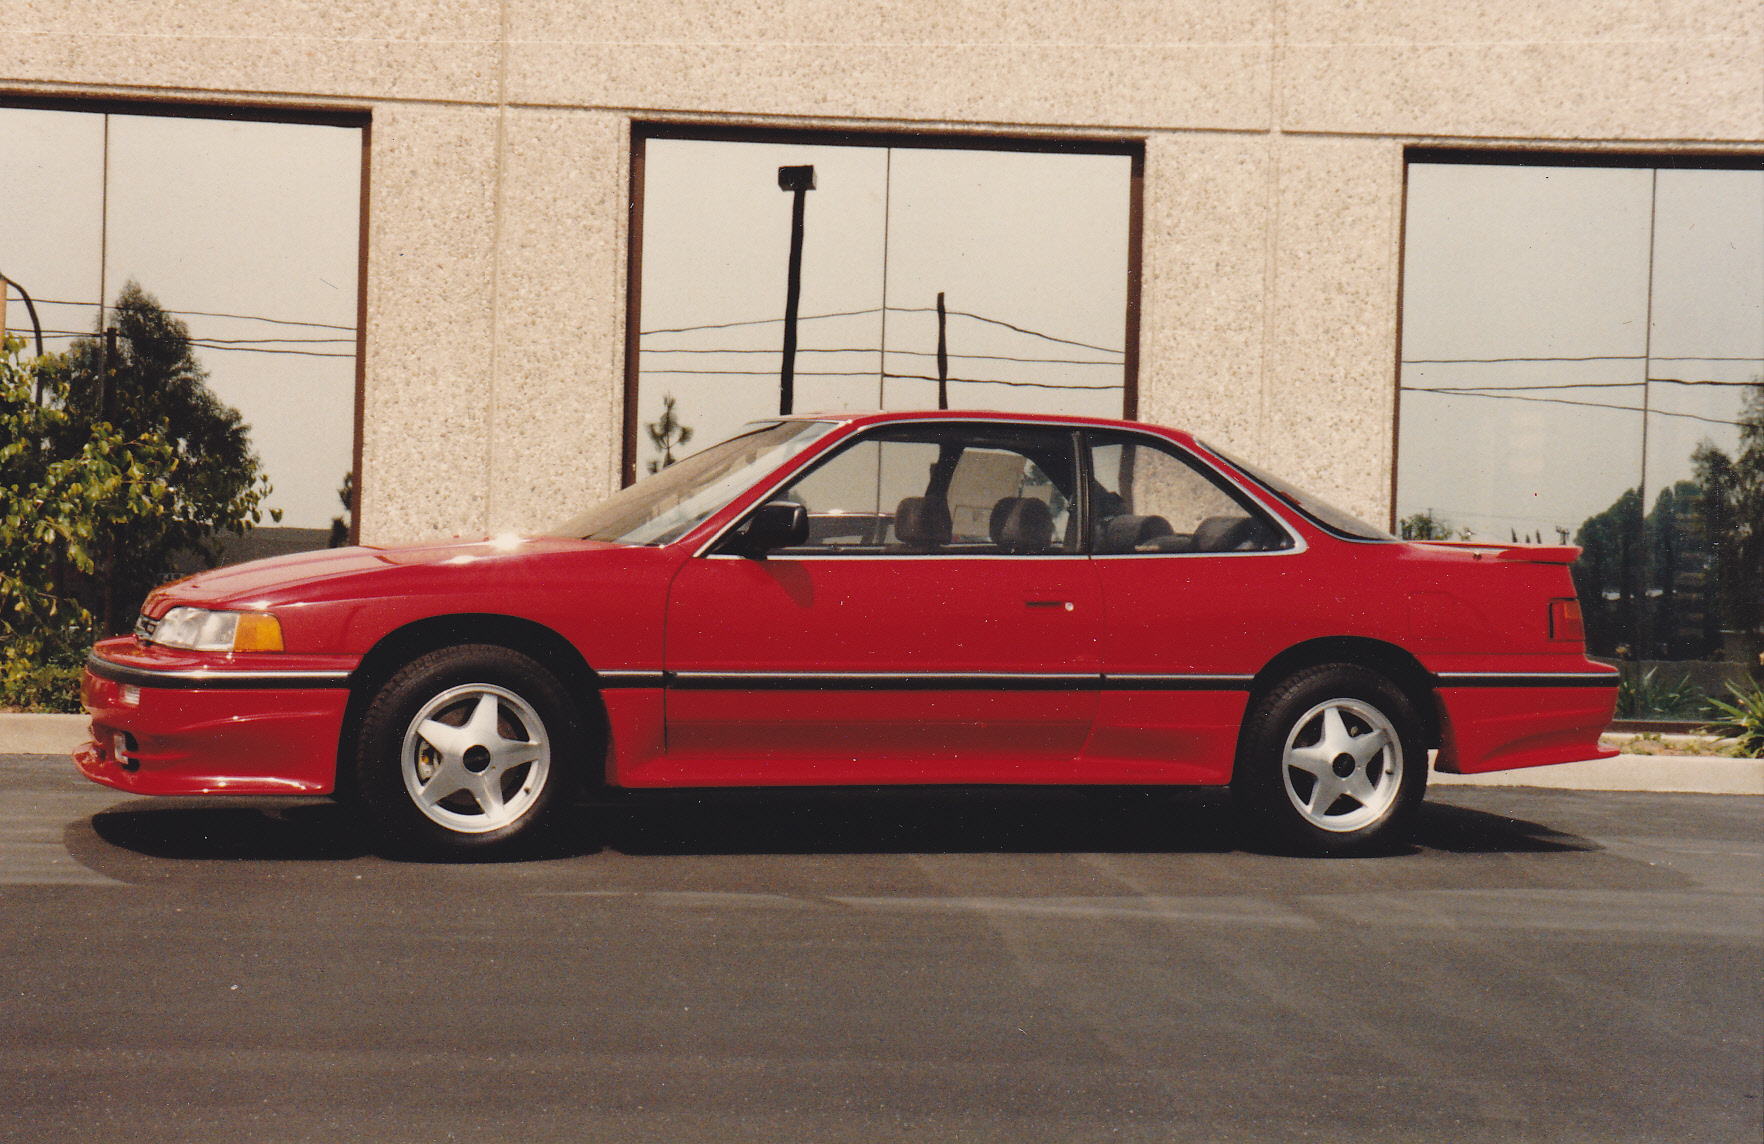 1990 Acura Legend Photos Informations Articles Integra Engine Free Image For User Manual 12